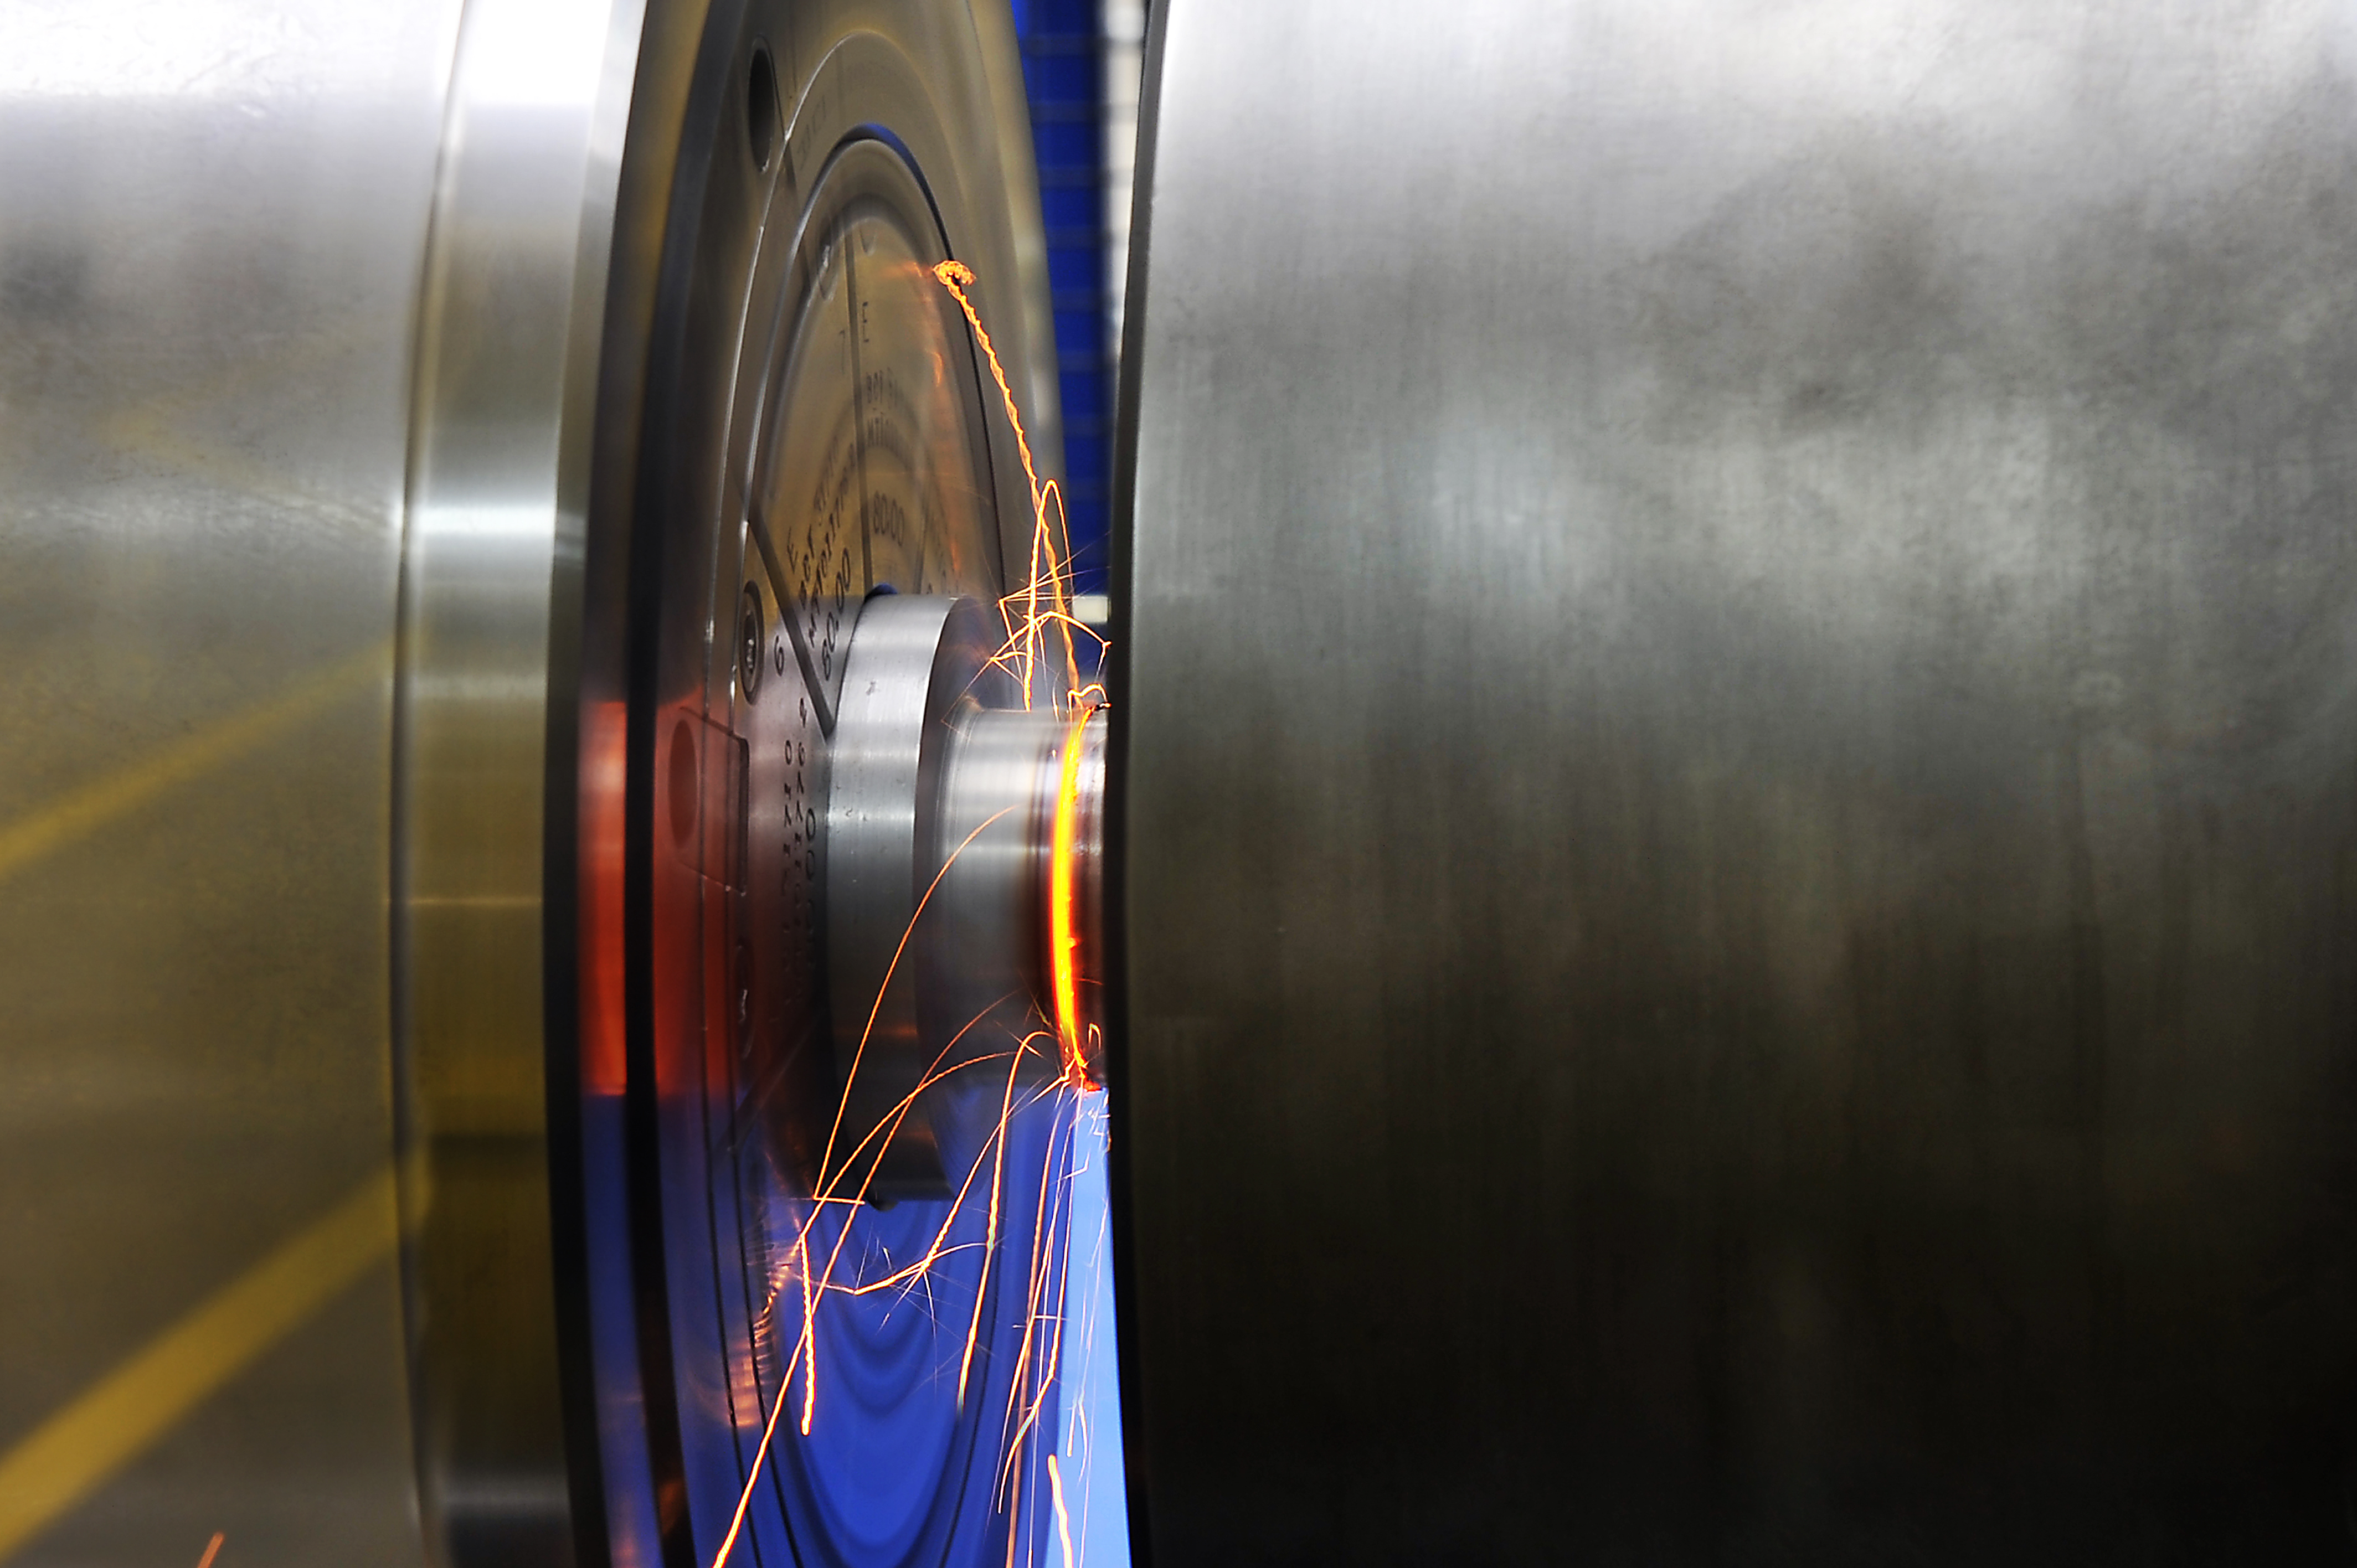 Advanced rotary friction welding